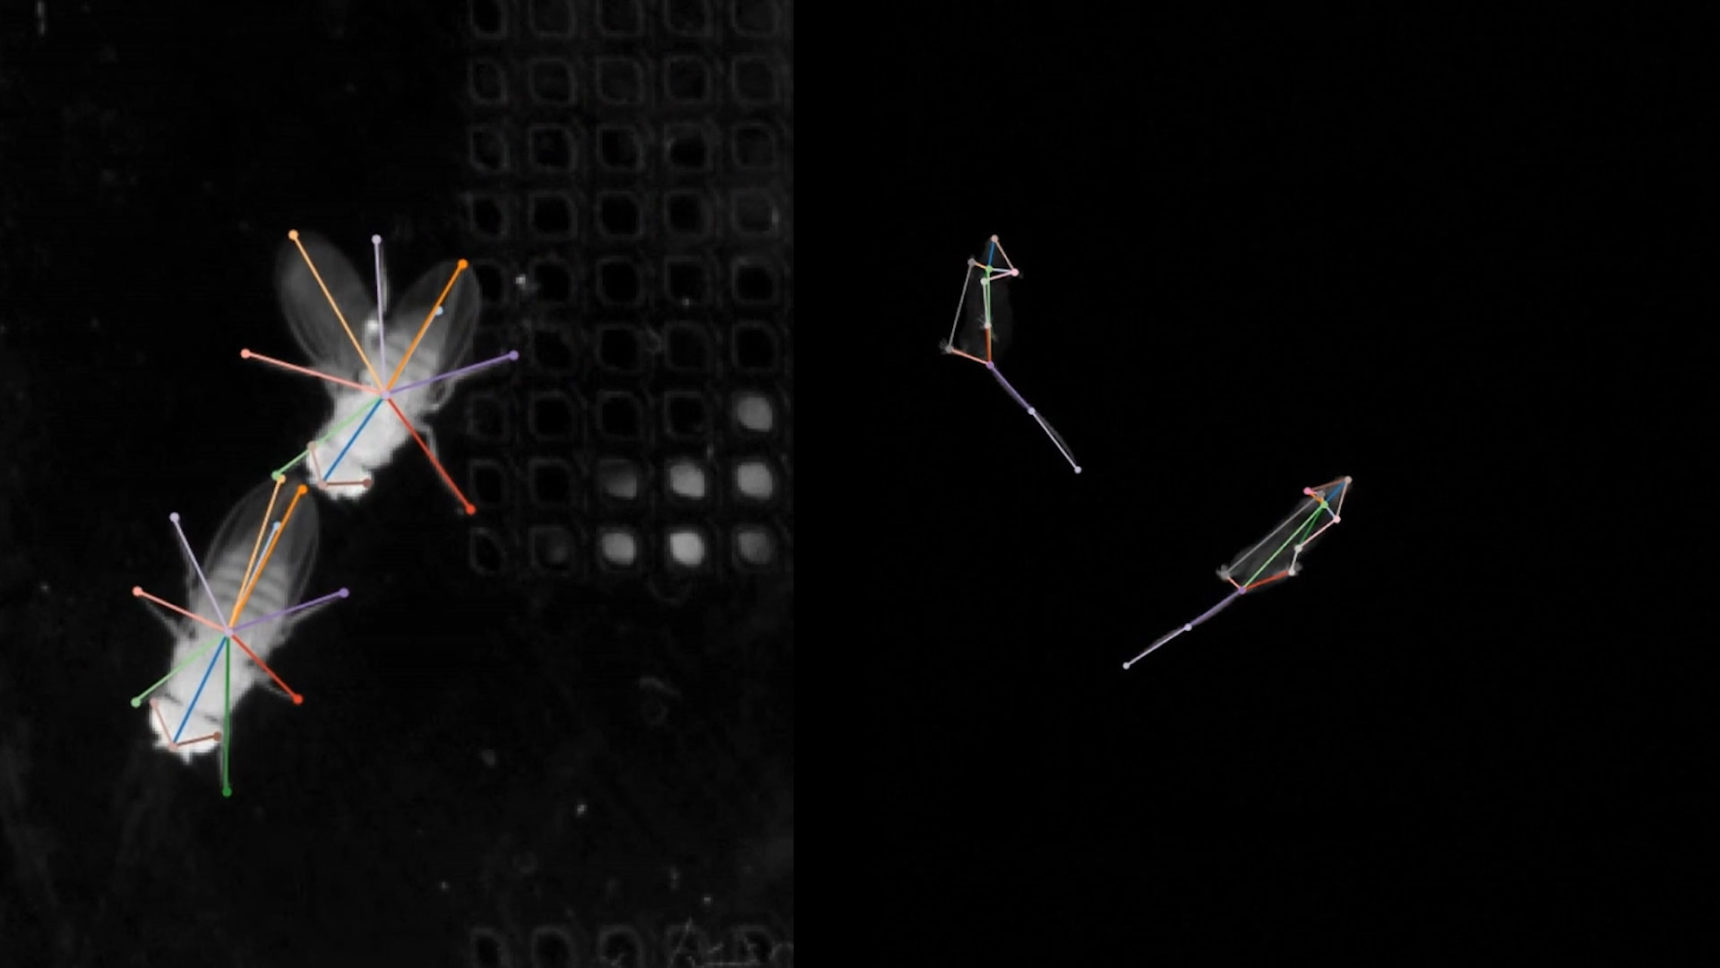 New methods can track the postures of diverse animals as they interact. In these videos, the algorithm SLEAP automatically labels and follows the body parts of a pair of courting flies (left) and of two mice exploring their environment.